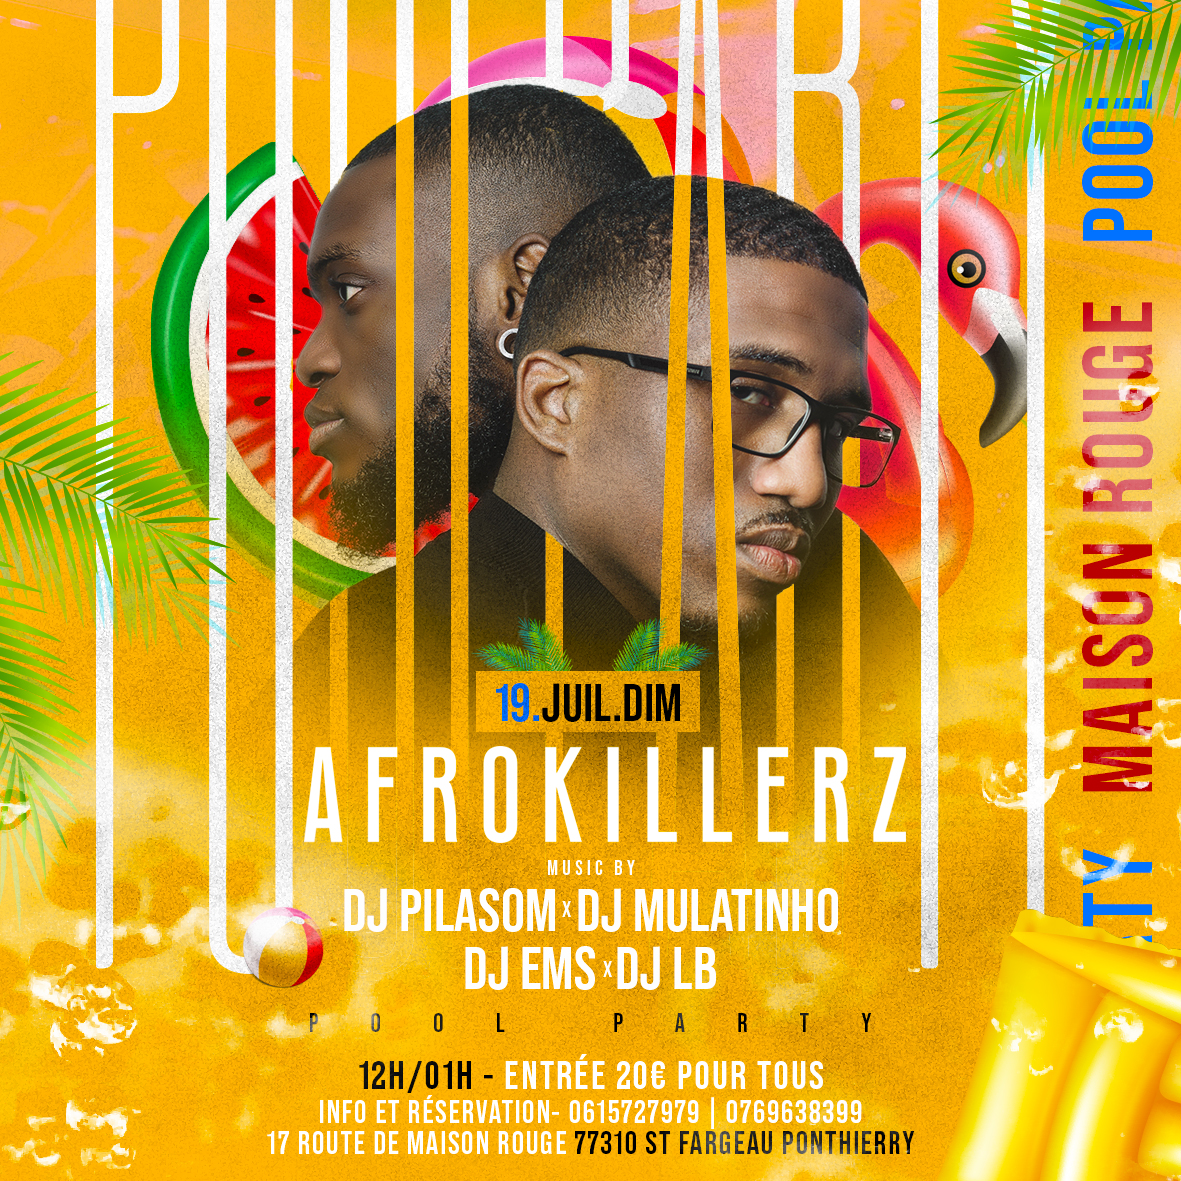 POOL PARTY W/ AFROKILLERZ FLYER ‡ARTWORK